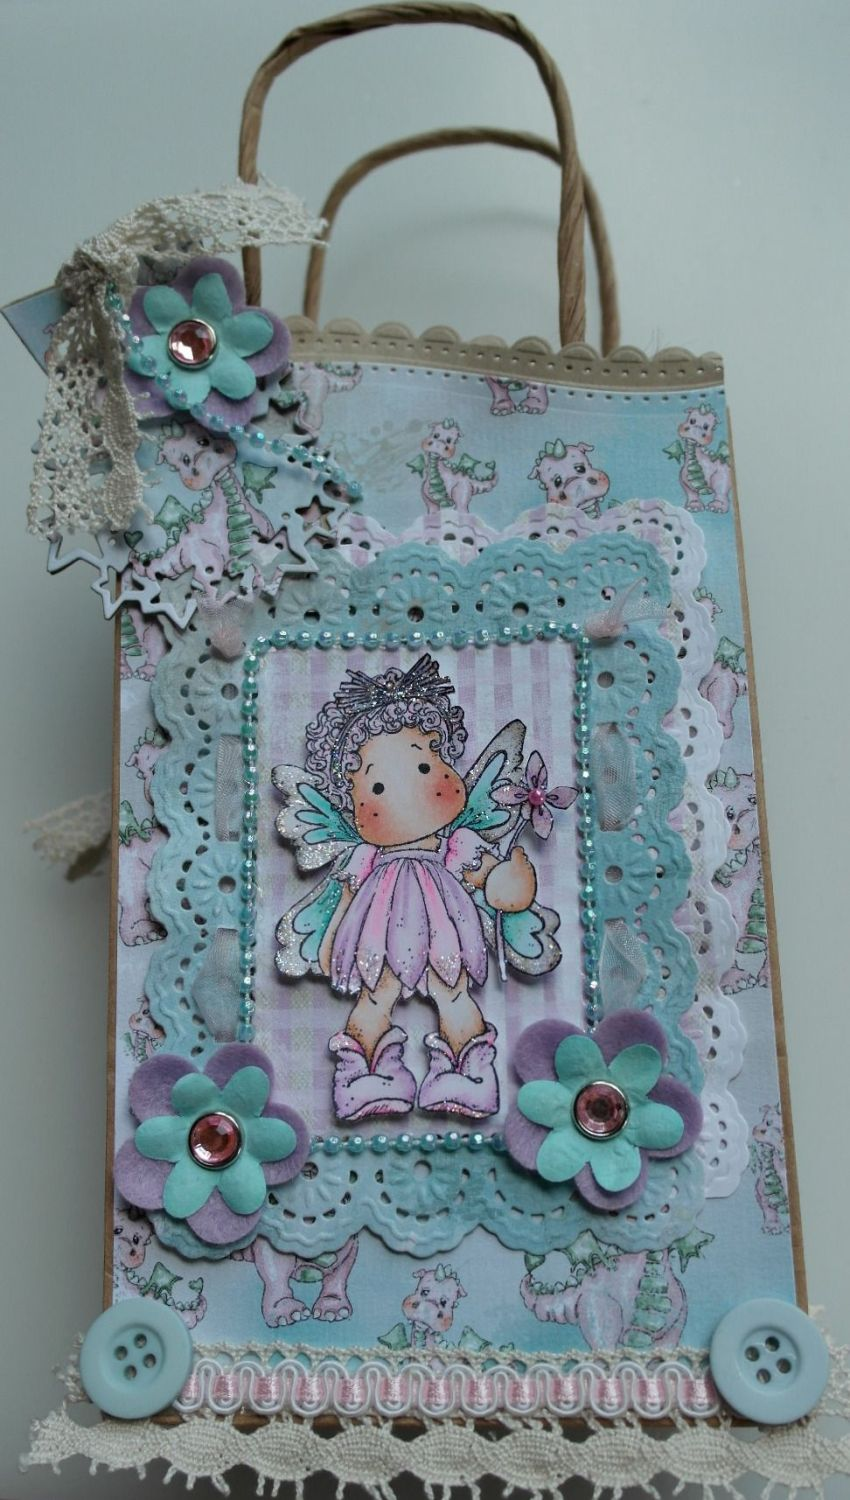 *fairy magic* OOAK Handmade Fantasy Scrapbook Dragon Fairy Book in a Bag